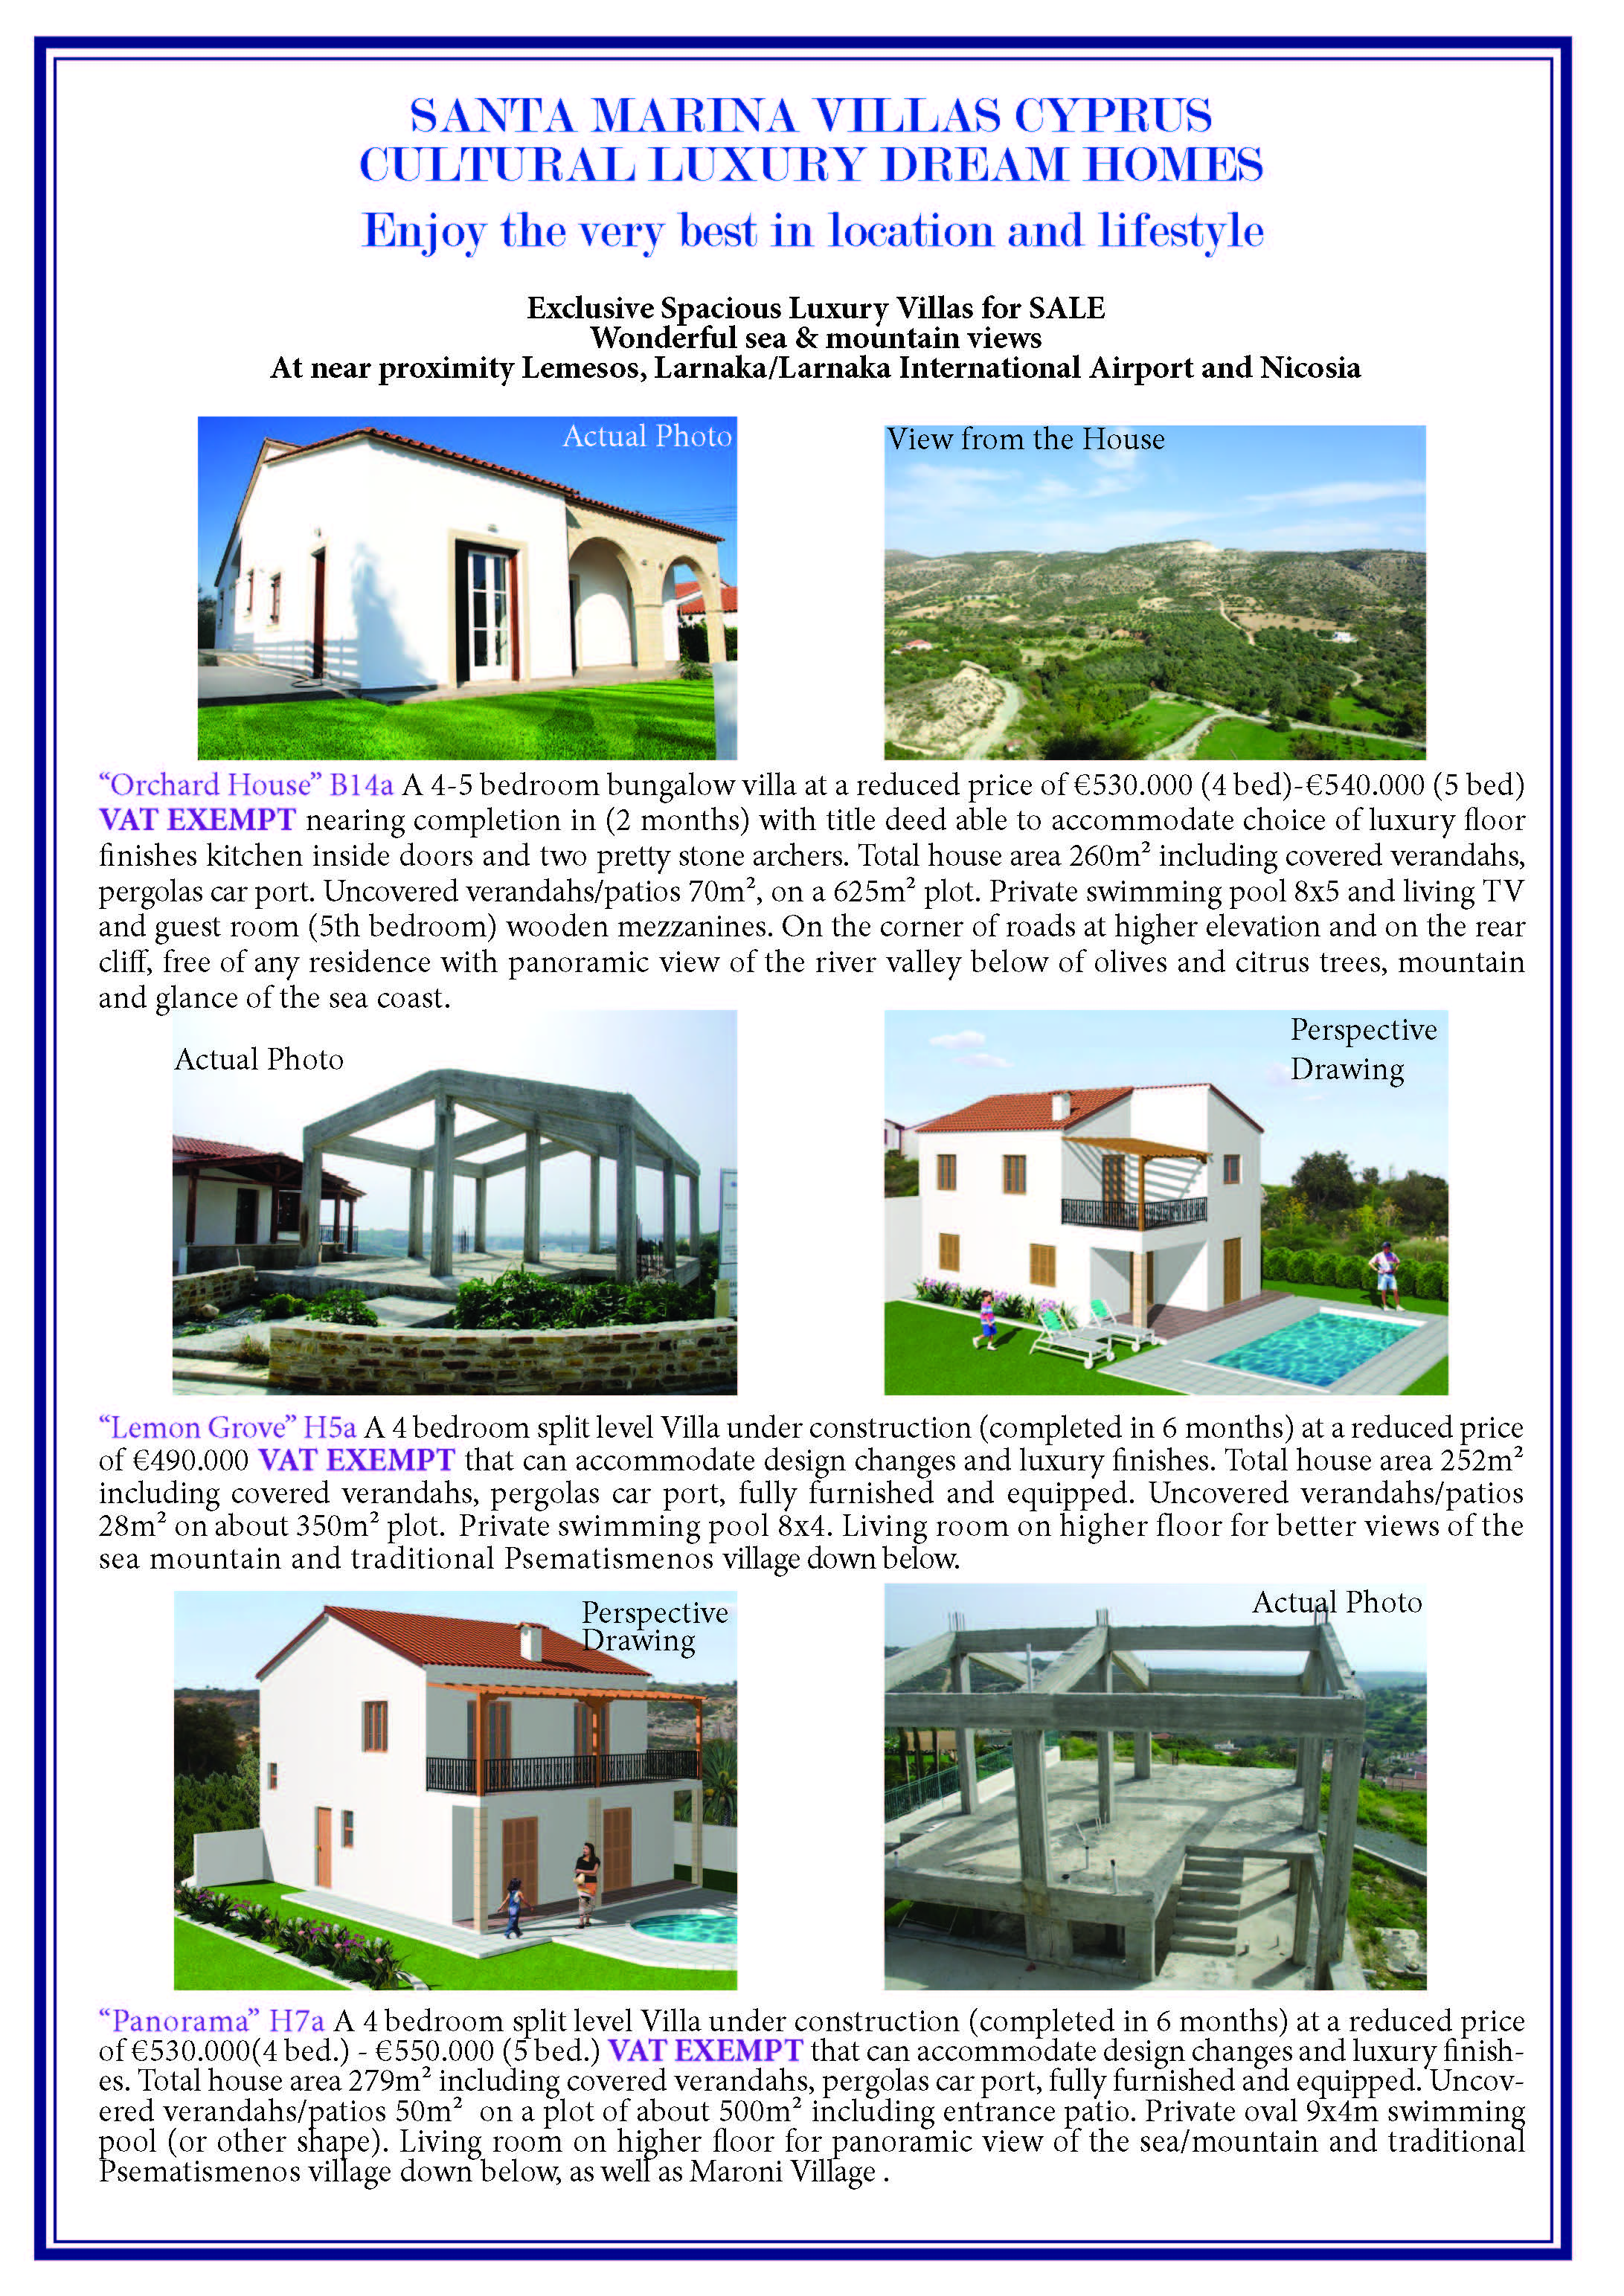 Santa Marina Cyprus Luxury Dream homes Page 2